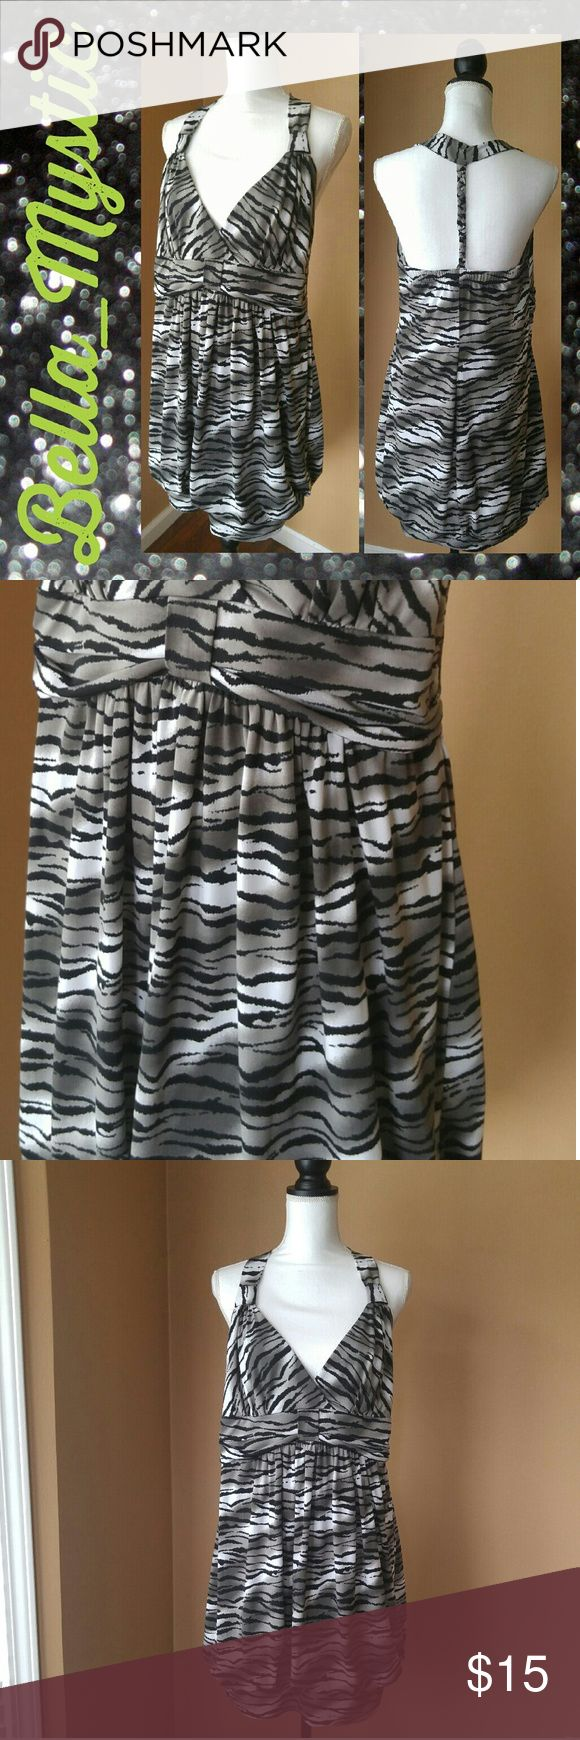 Torrid zebra striped party dress Fun and fearless bold zebra striped dress from torrid.  It features a high empire waist and braided back strap. Its made from stretchy light weight fabric. Gently used no major signs of wear. torrid Dresses Mini